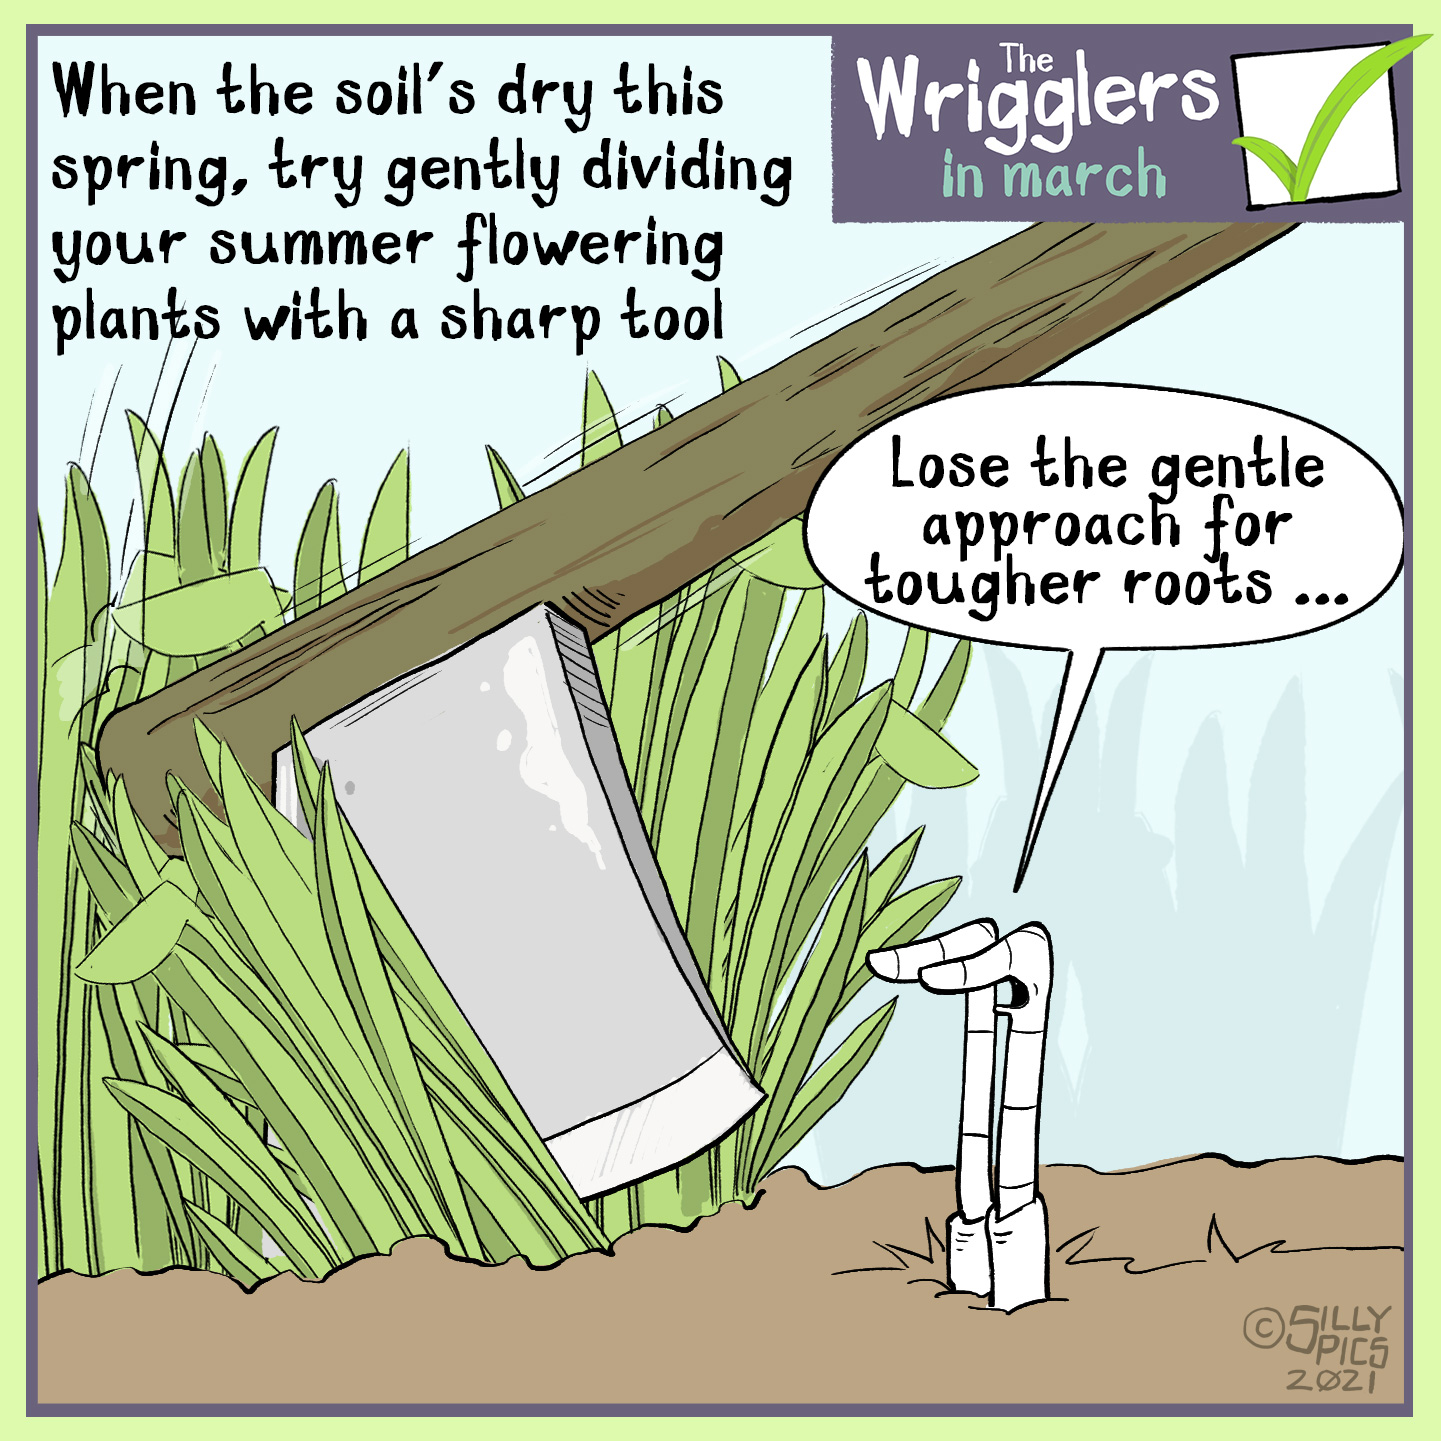 Gardening cartoon from the wrigglers. Dividing perennials is a job to be done while the plants are dormant, and before they wake up for Spring. The advice is to try gently dividing to start with , and when all else fails use an axe. One worm says to the other, lose th gntle approach for tougher roots